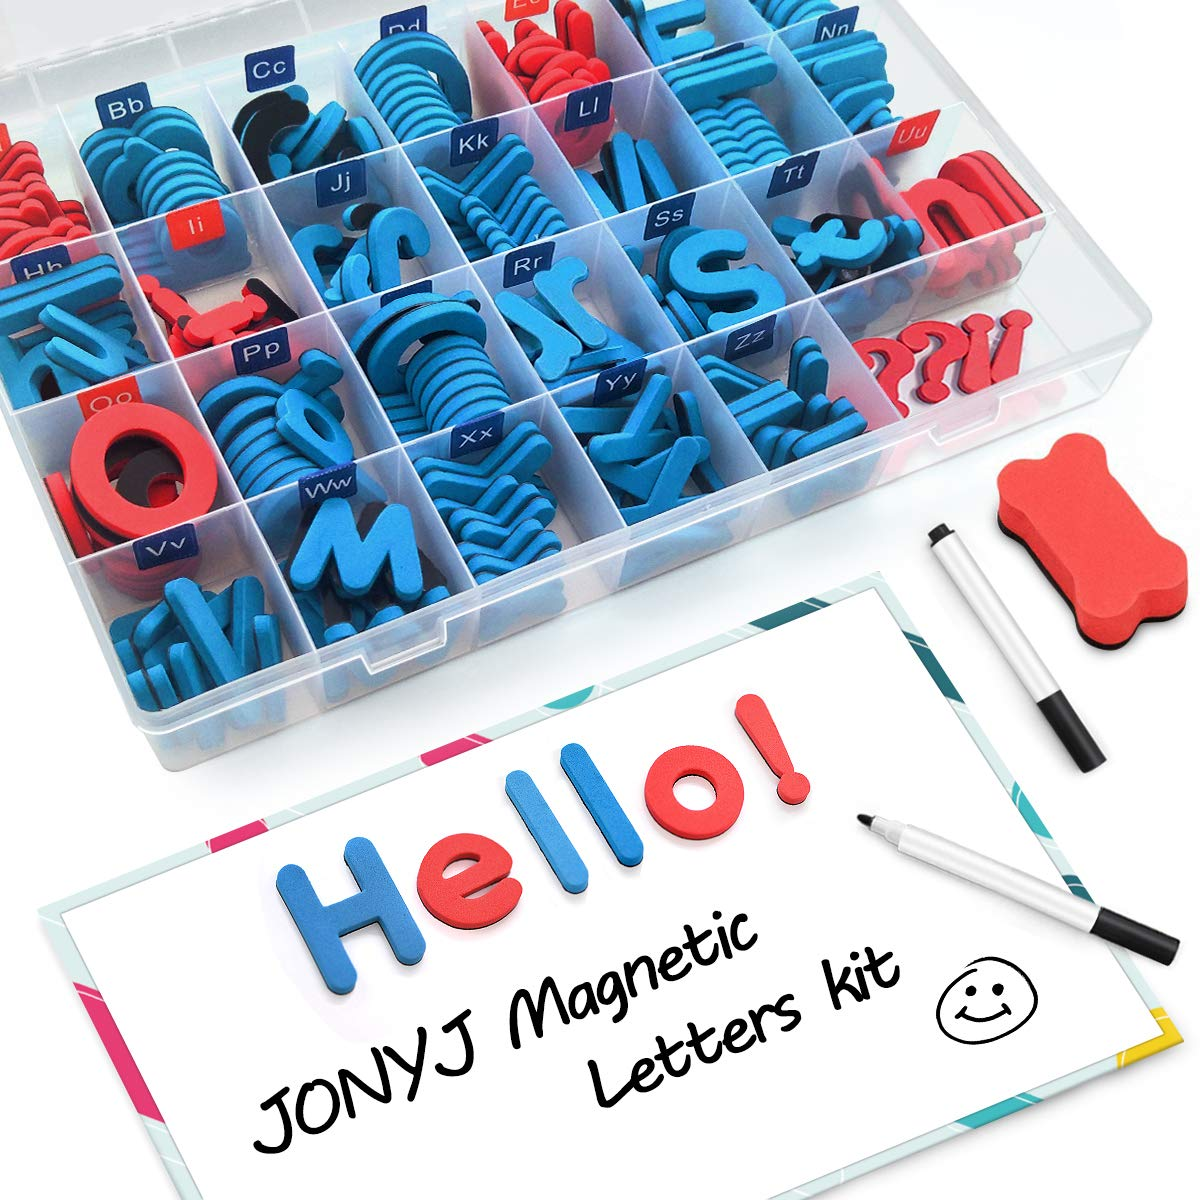 JONYJ Foam Magnetic Letters, Magnetic Alphabet Letters Board with Storage Box, 208 Pcs ABC Uppercase Lowercase Alphabet Magnets for Kids Spelling and Learning - Classroom & Home Education by JONYJ